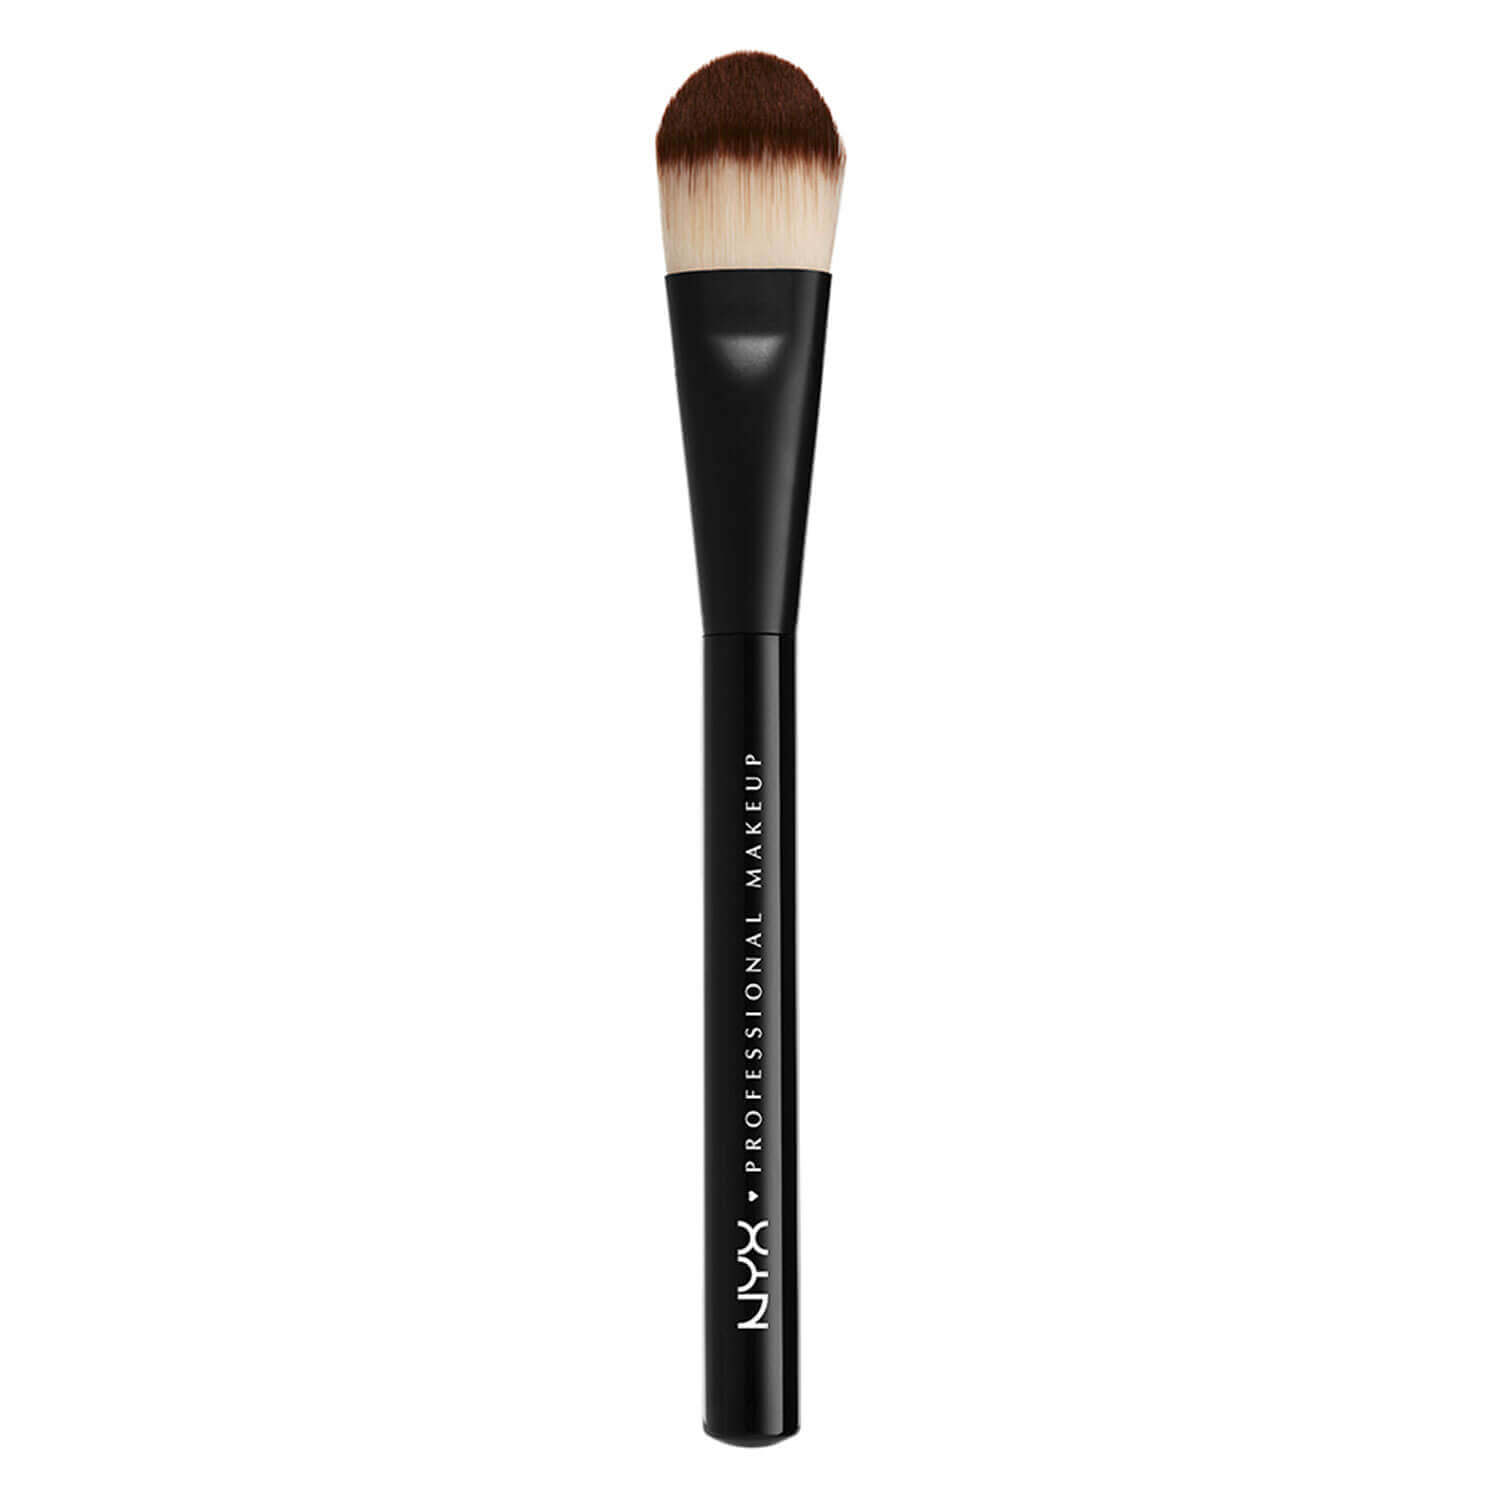 Pro Brush - Flat Foundation Brush